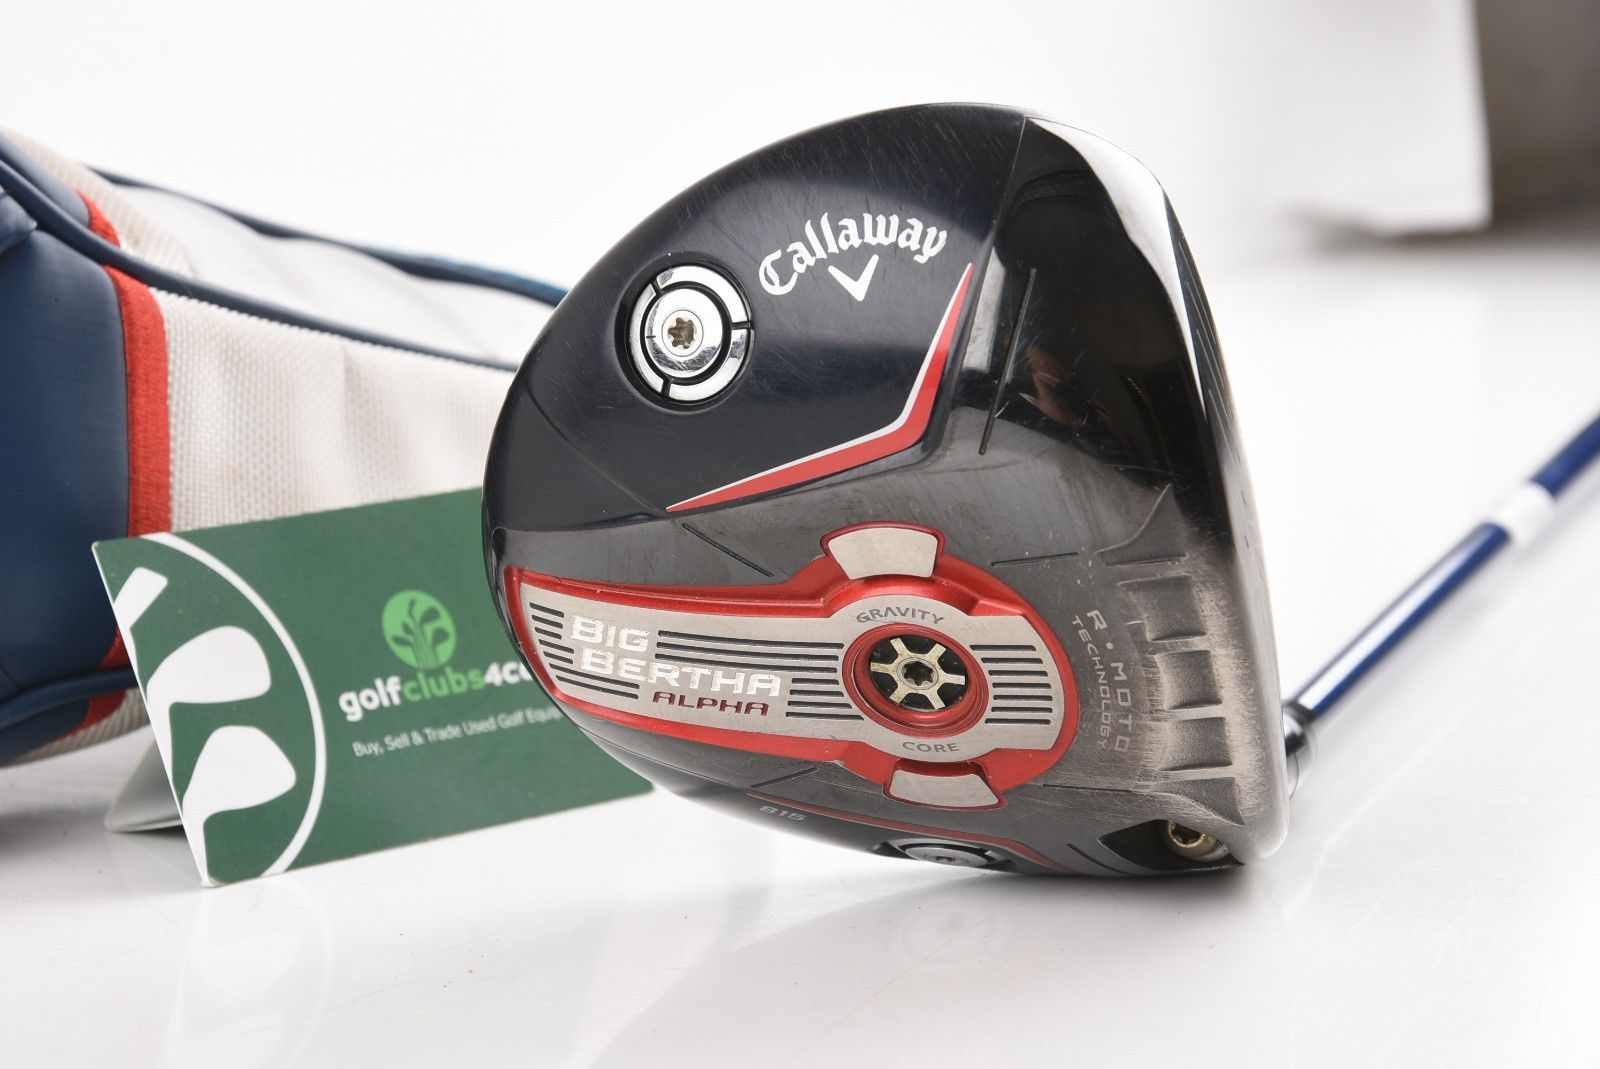 callaway used drivers for sale